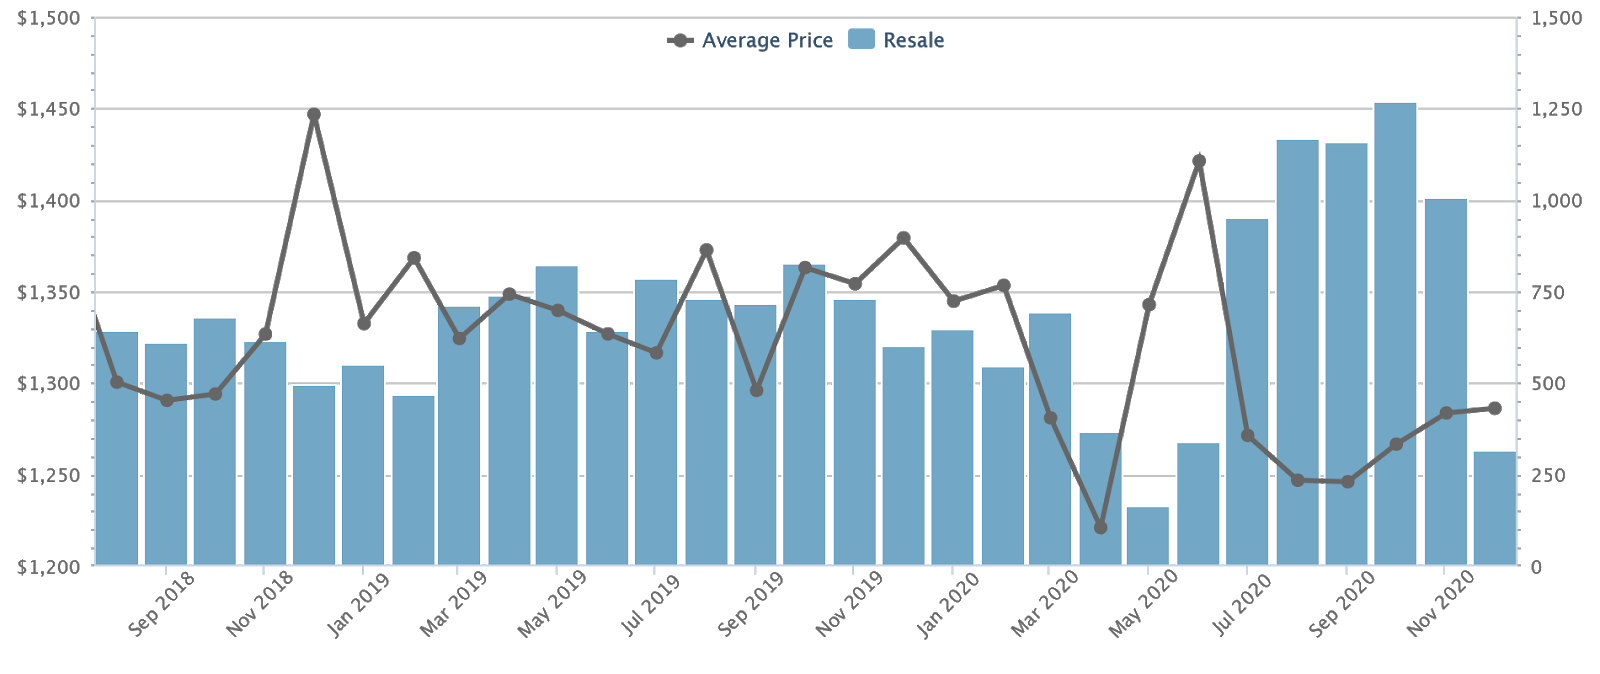 resale home prices